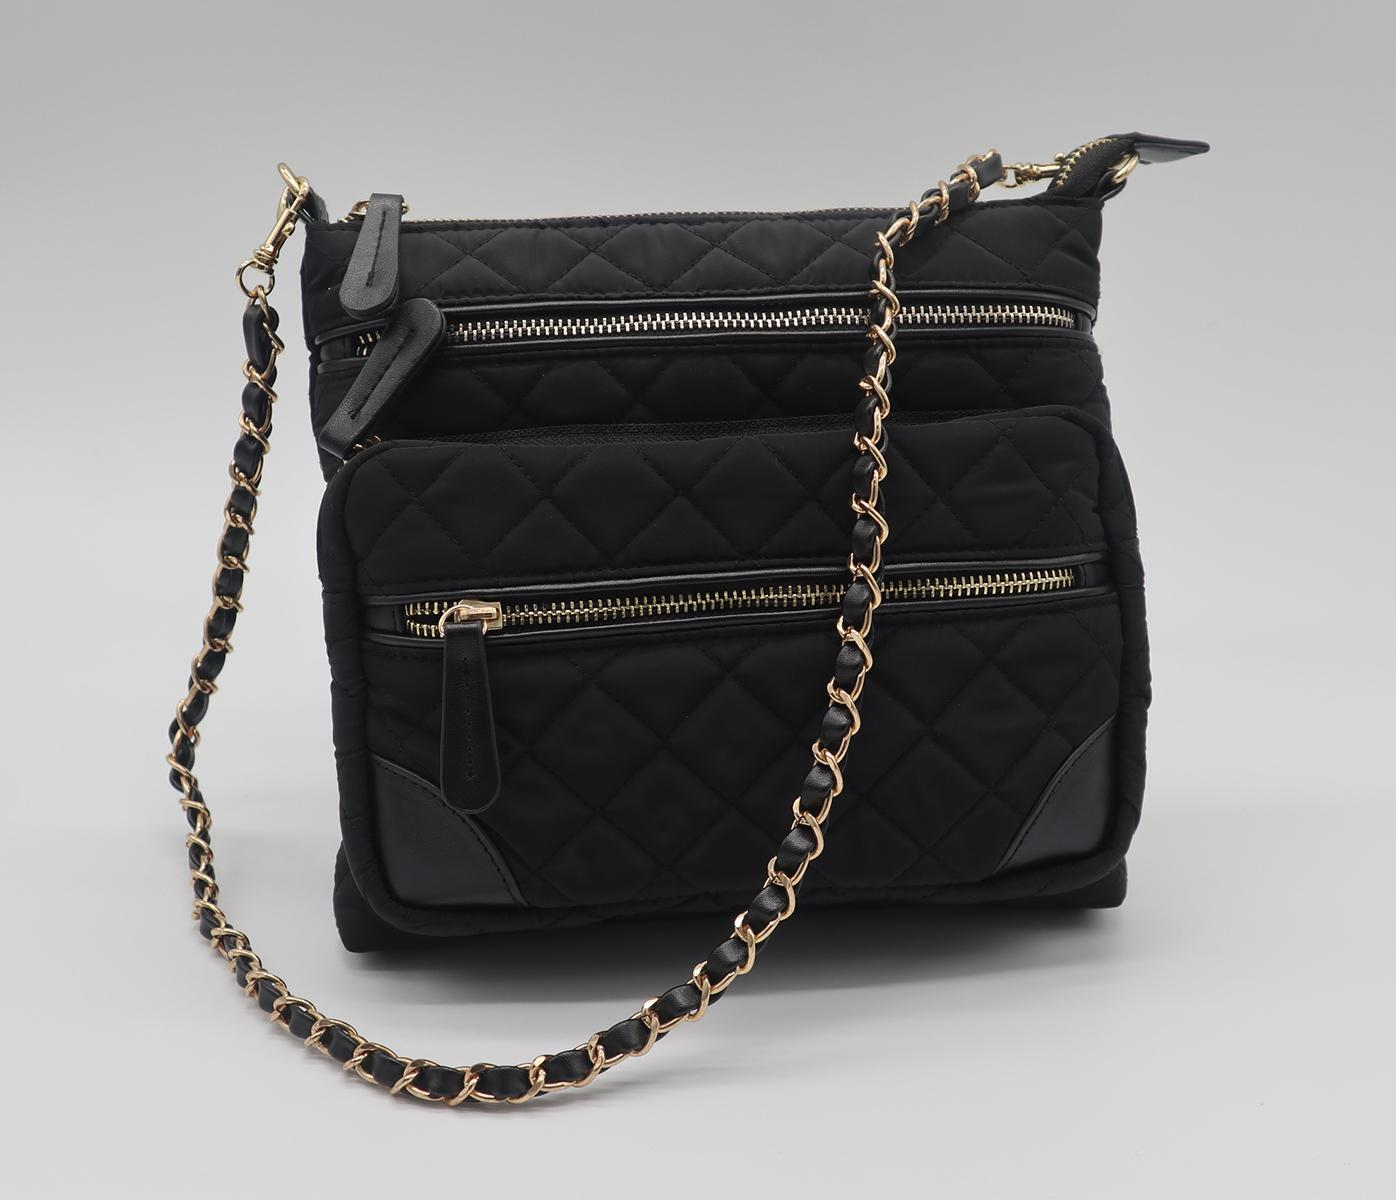 Nylon quilted fashion beauty women's multifunction shoulder bag w/ three straps 1